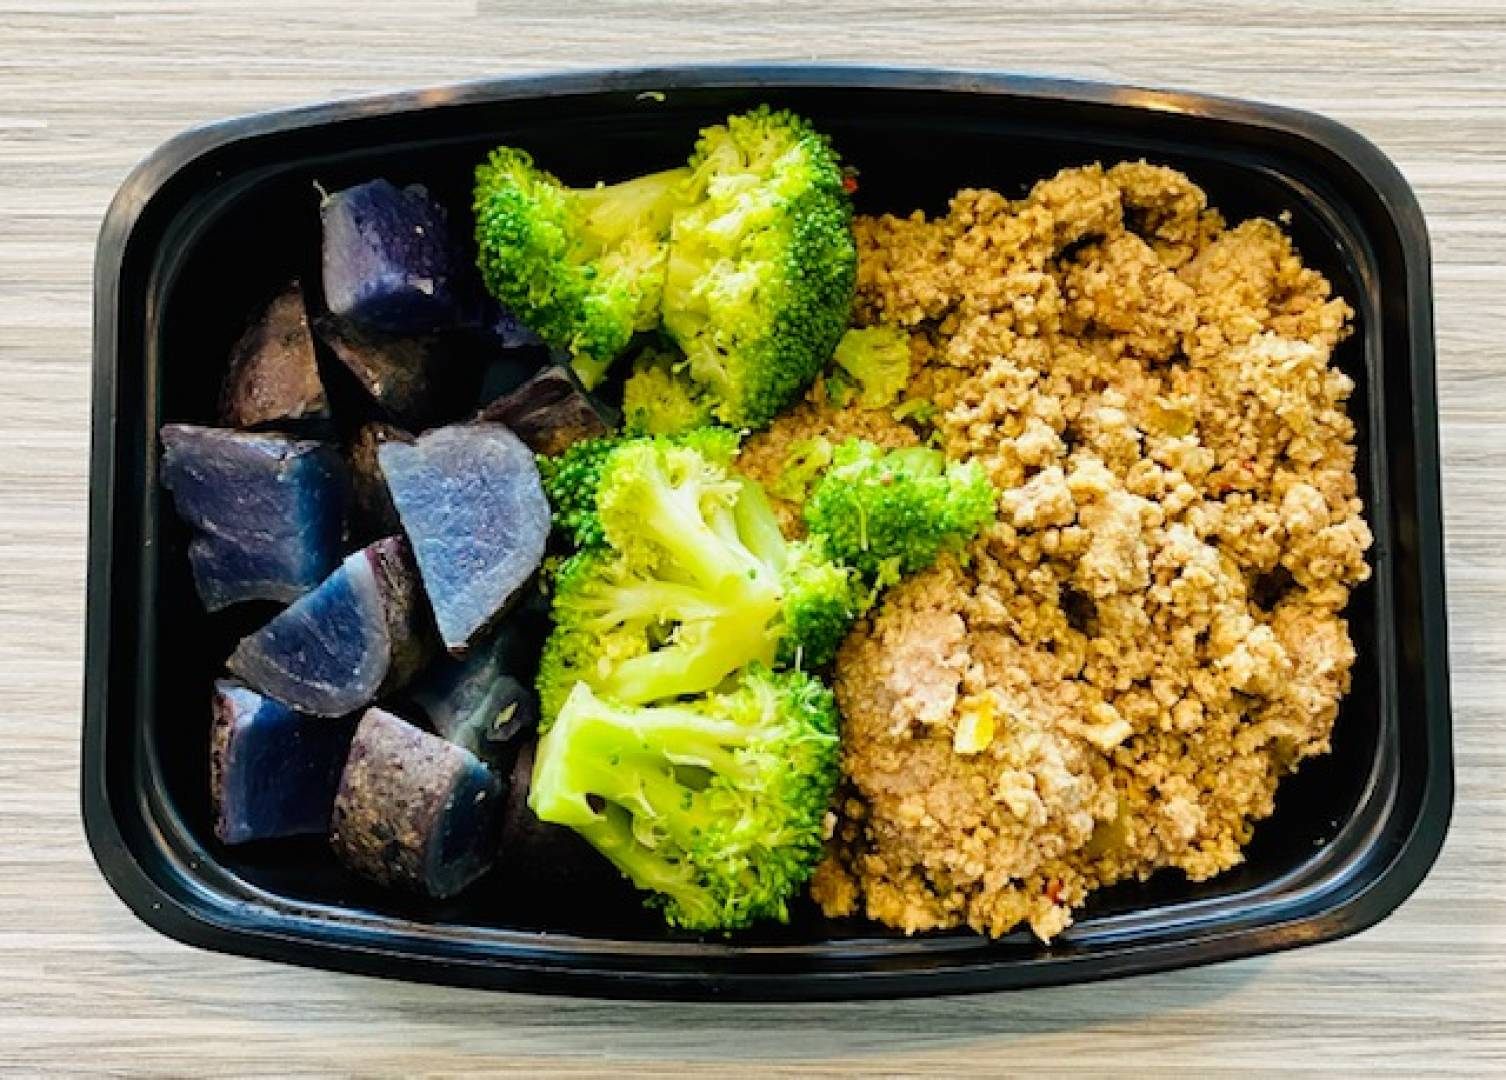 Ground Turkey, Purple Potato and Broccoli